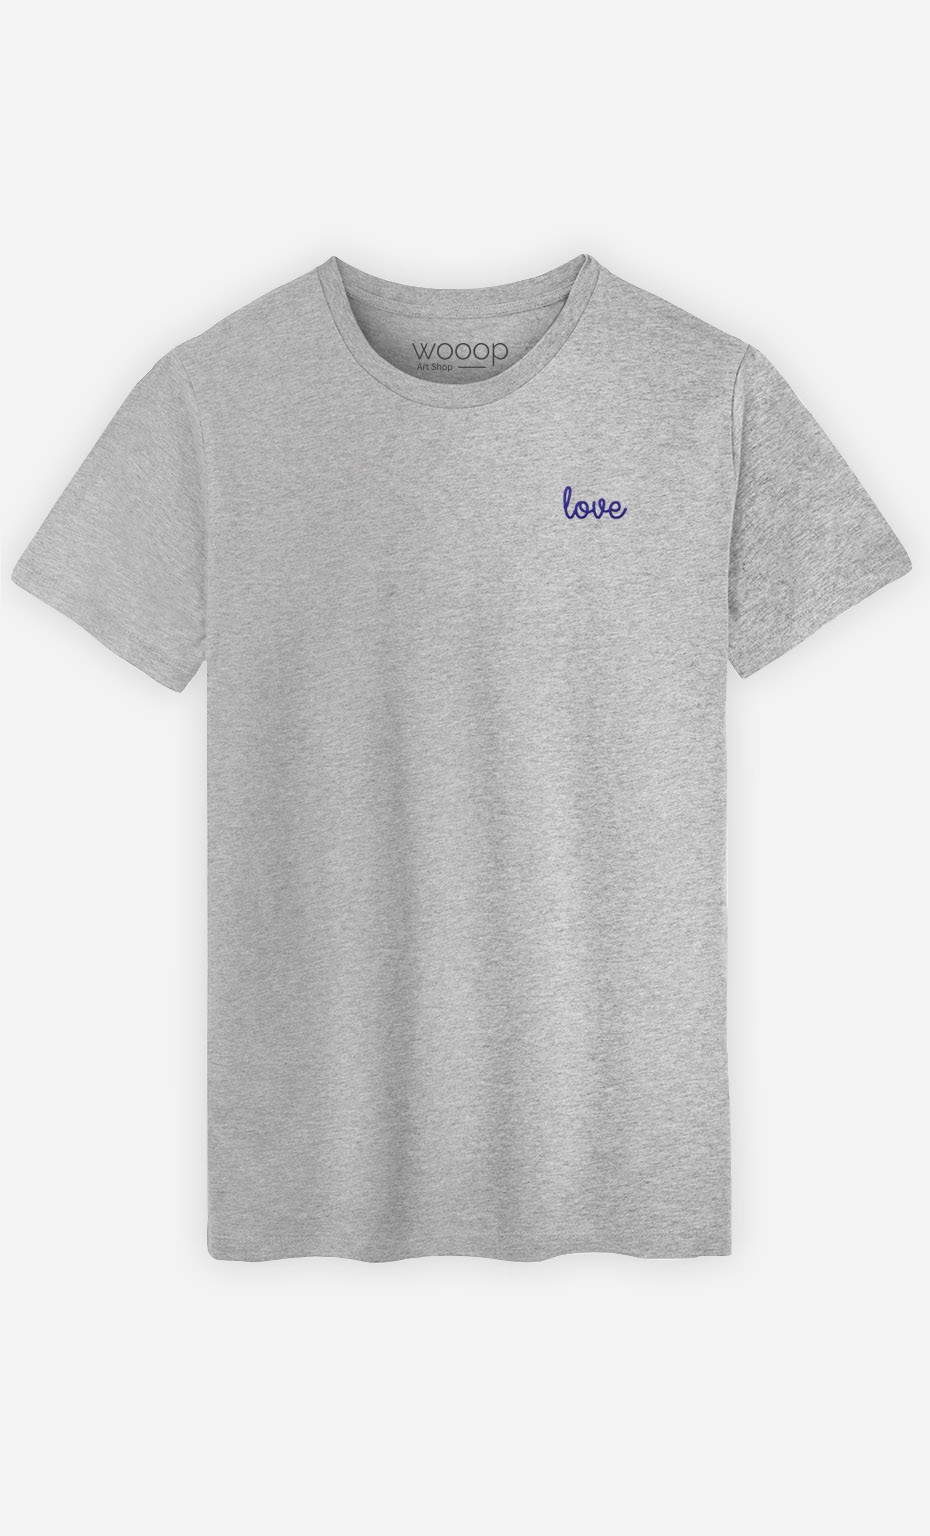 T-shirt Love - brodé